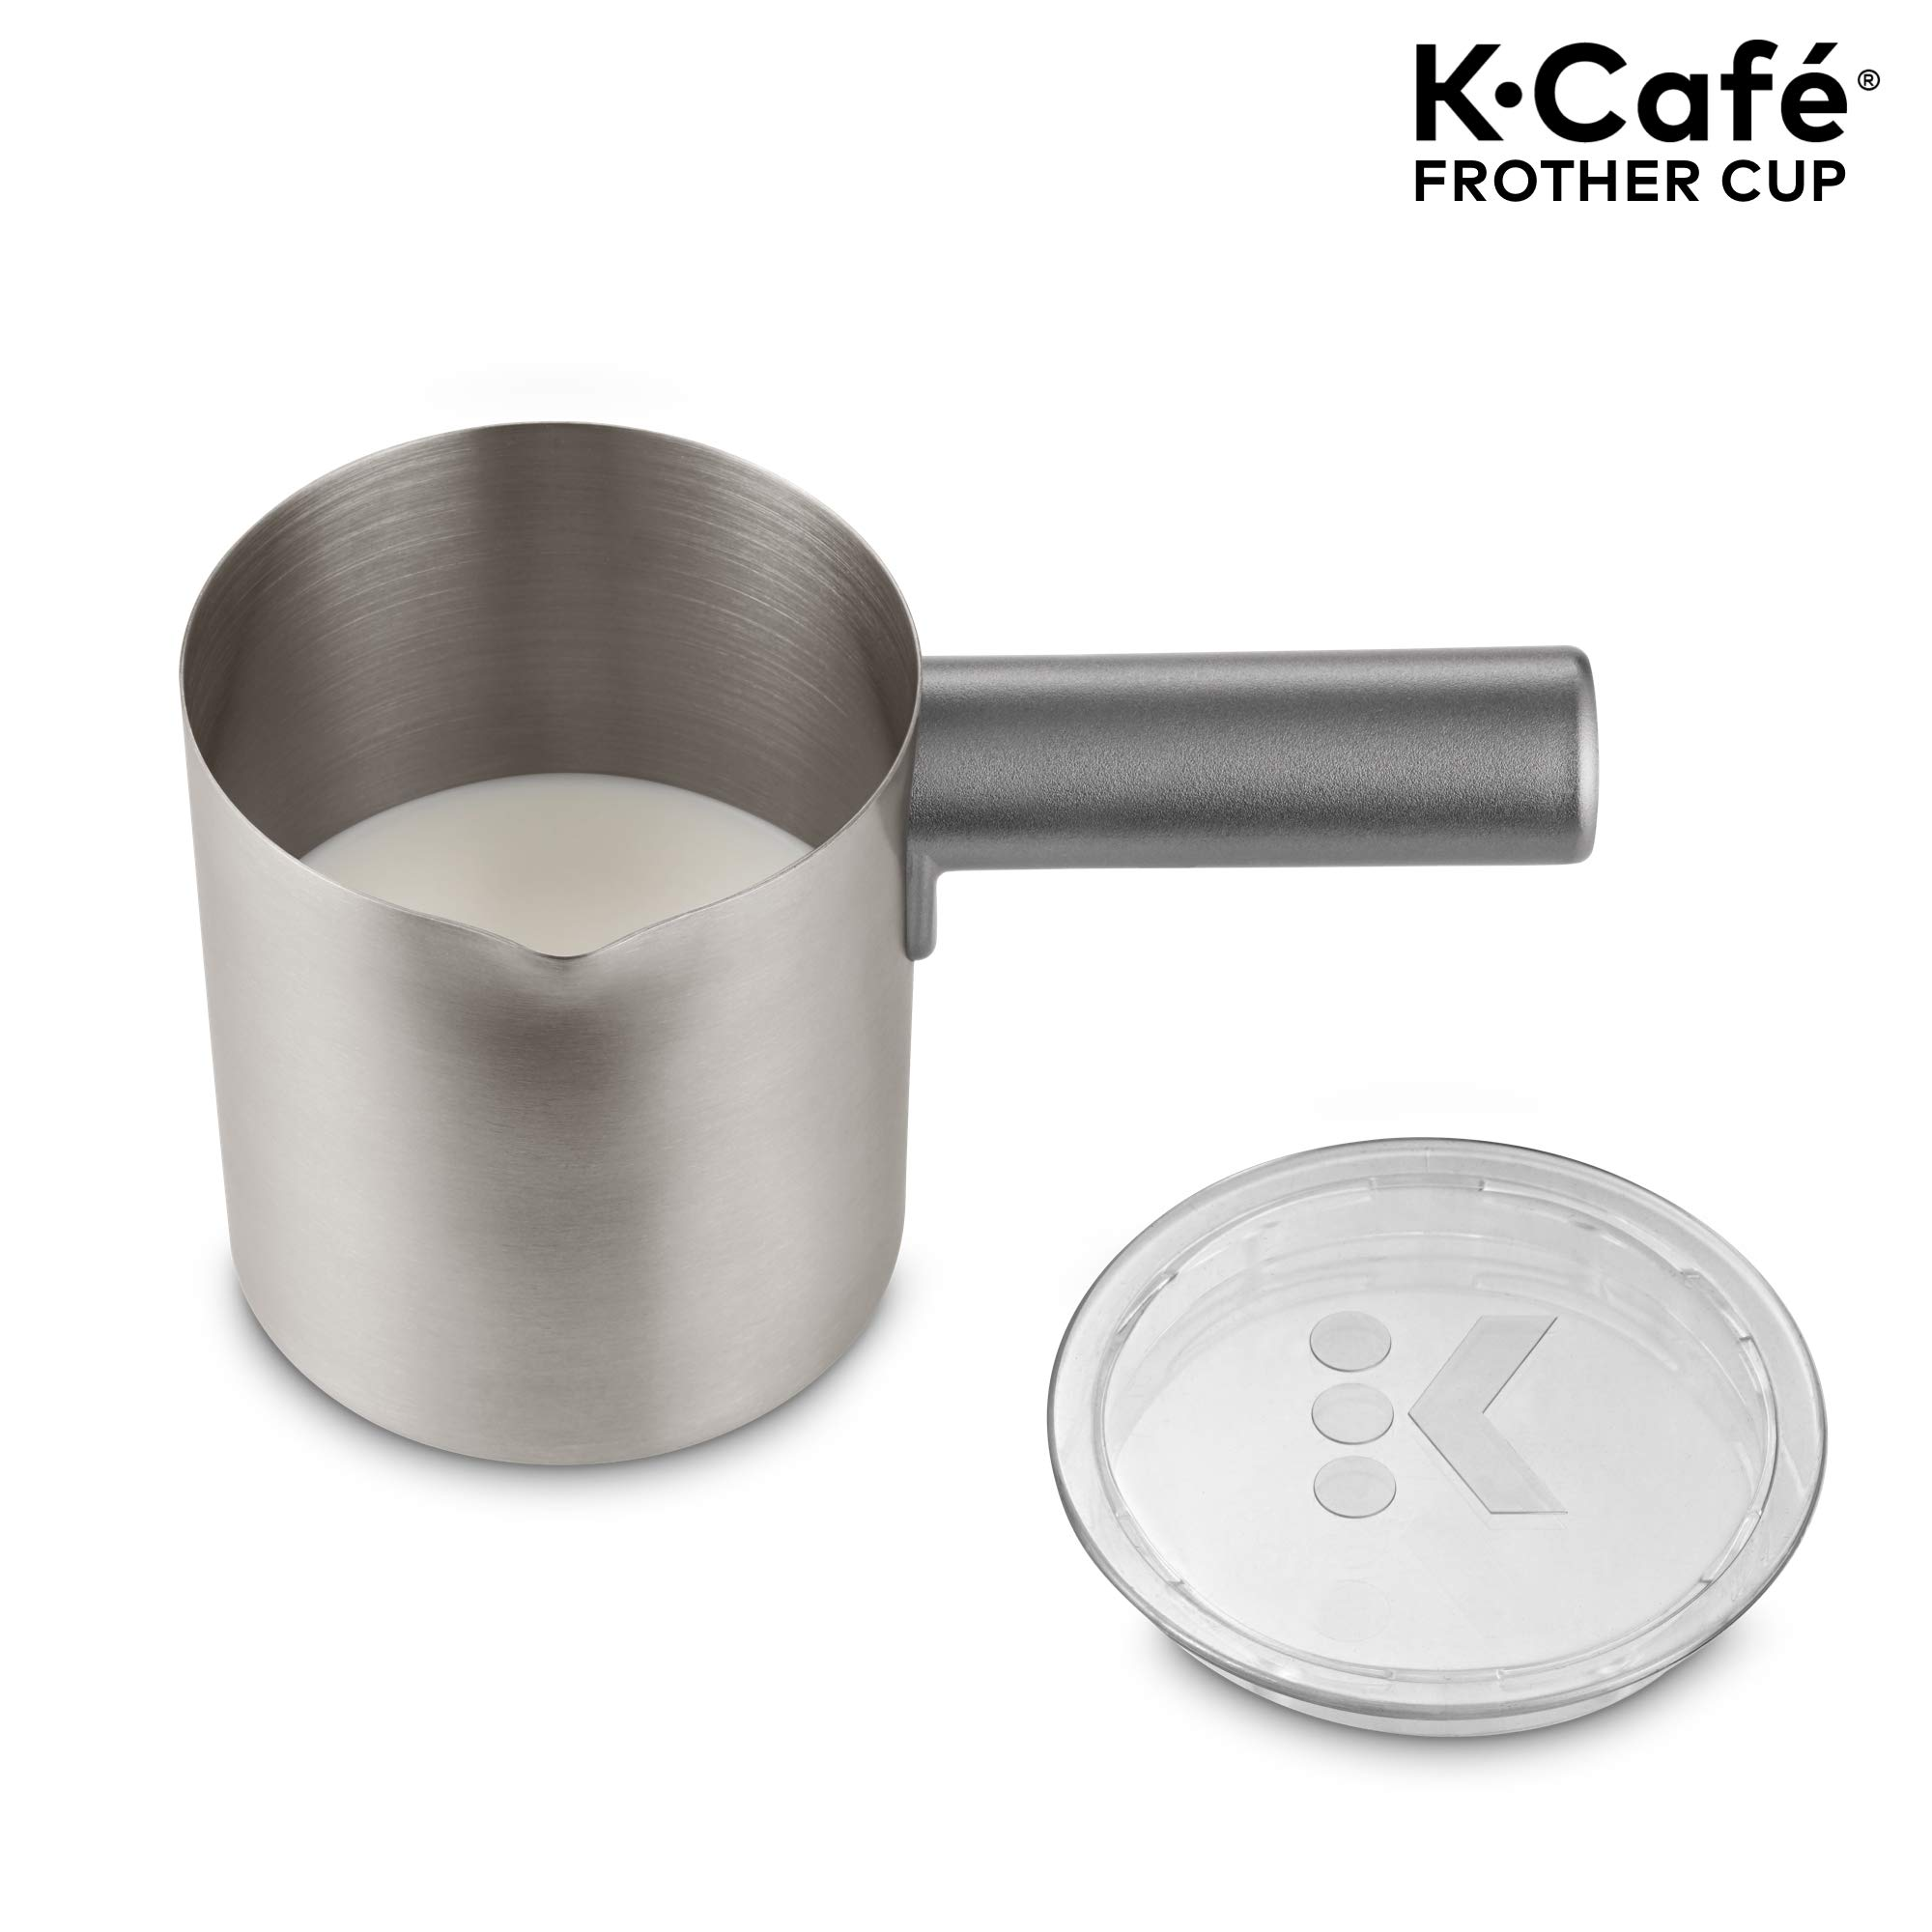 Keurig K-Café Milk Frother, Works with all Dairy and Non-Dairy Milk, Hot and Cold Frothing, Compatible with Keurig K-Café Coffee Makers Only, Nickel by Keurig (Image #2)